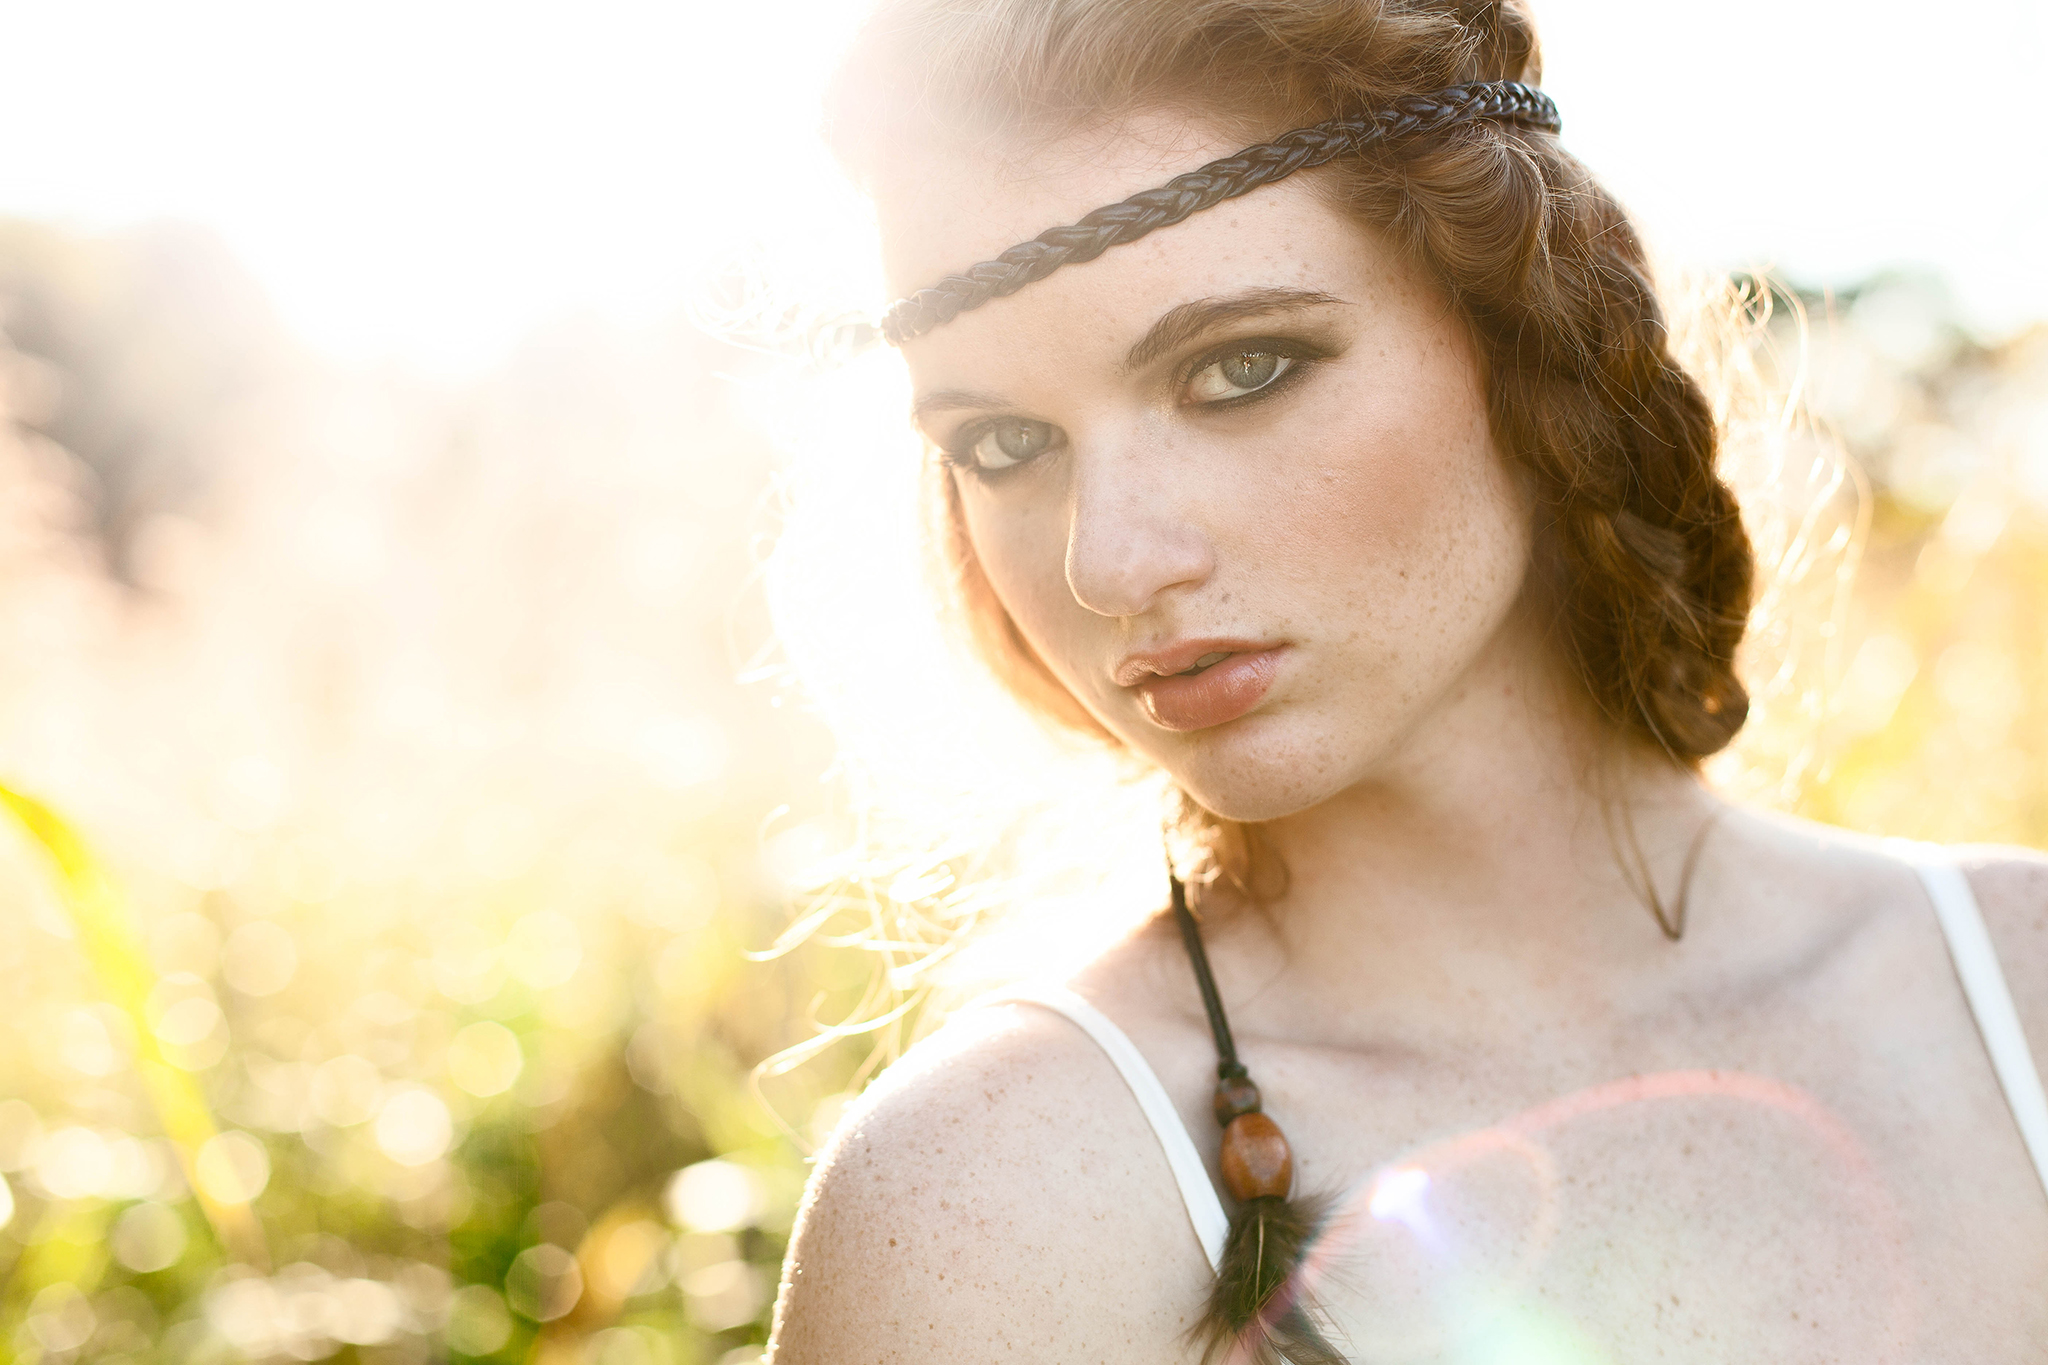 Hannah Wilmes | Hannah's mood board had a very airy, bohemian feel to it. We got really lucky the day of her shoot, since the weather and light wereperfect for more ethereal, backlit images.